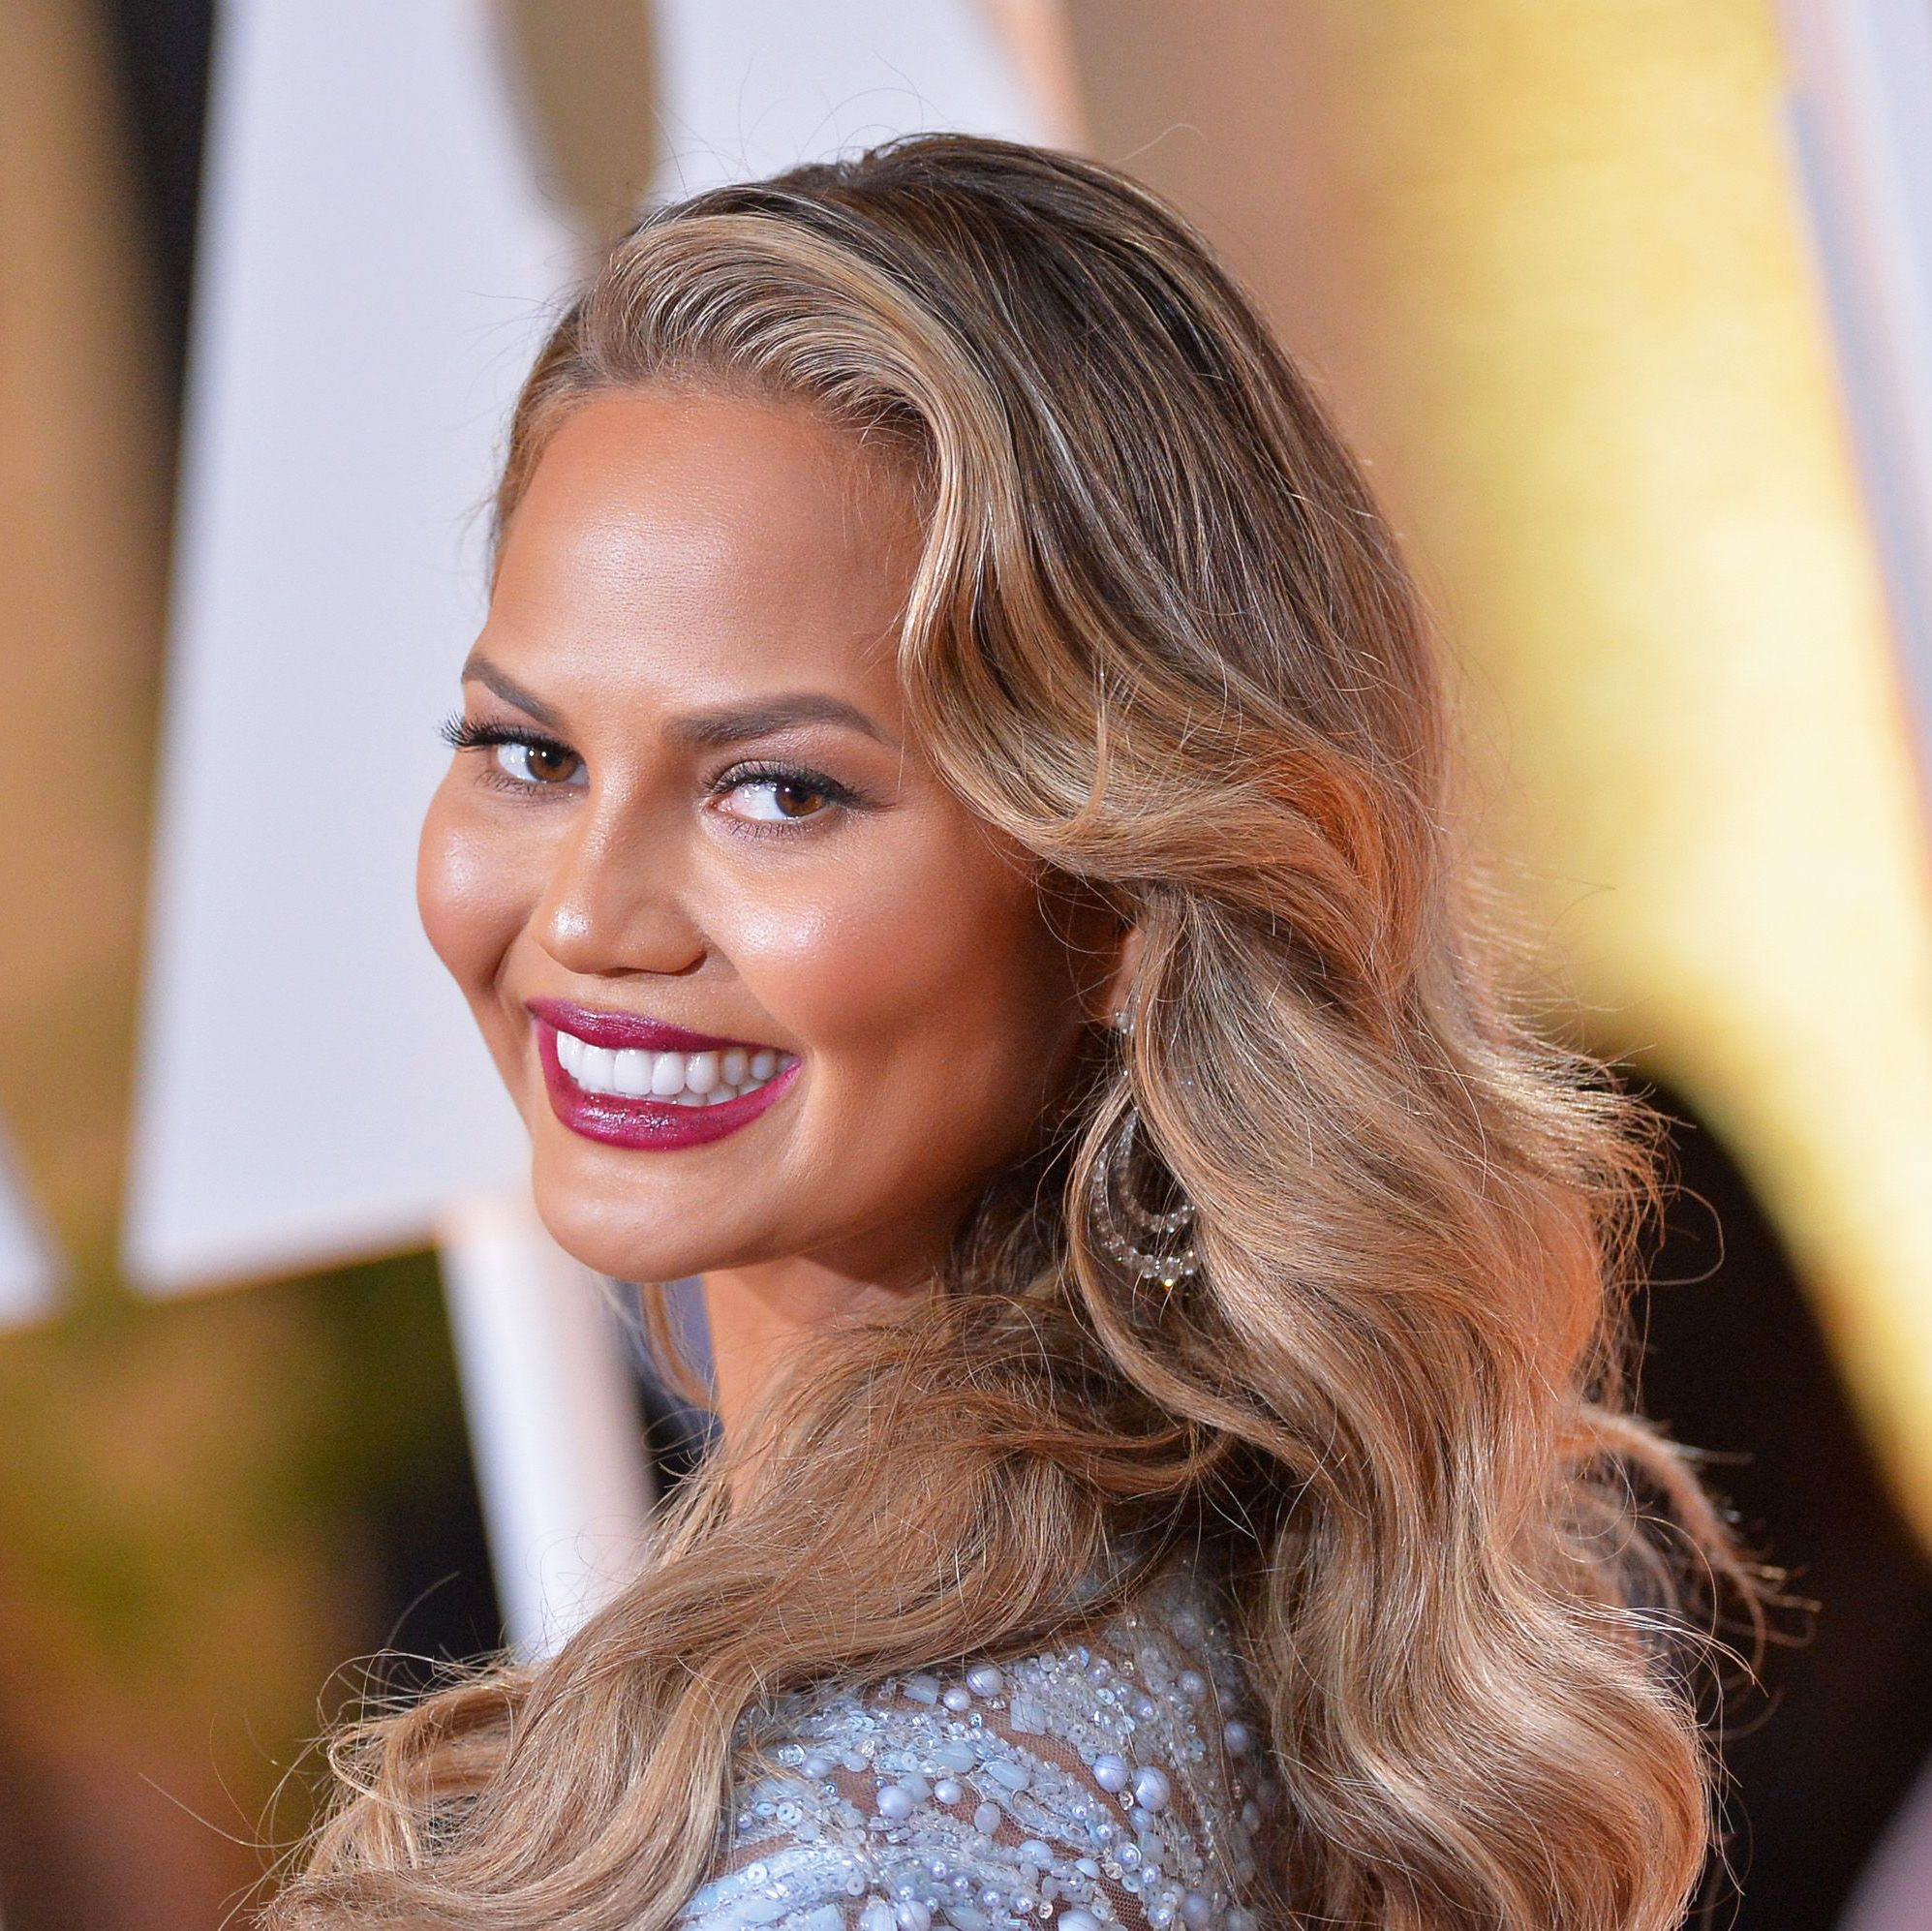 Chrissy Teigen Low-Key Had Dinner With President Obama, Apparently